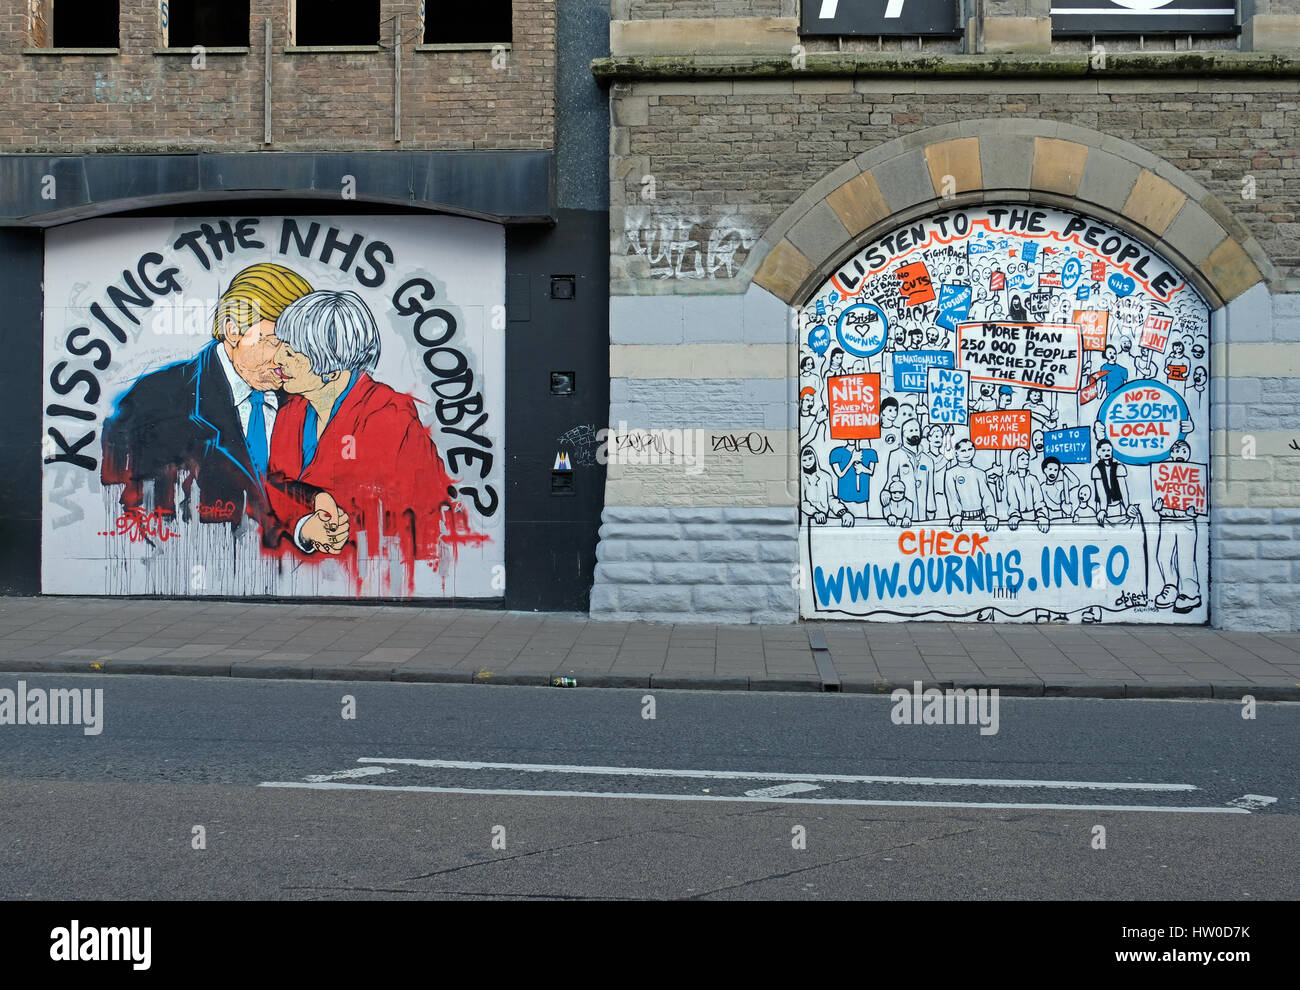 Bristol, UK. 15th March, 2017. New street art in the Stokes Croft area of the city highlights opposition to possible Stock Photo